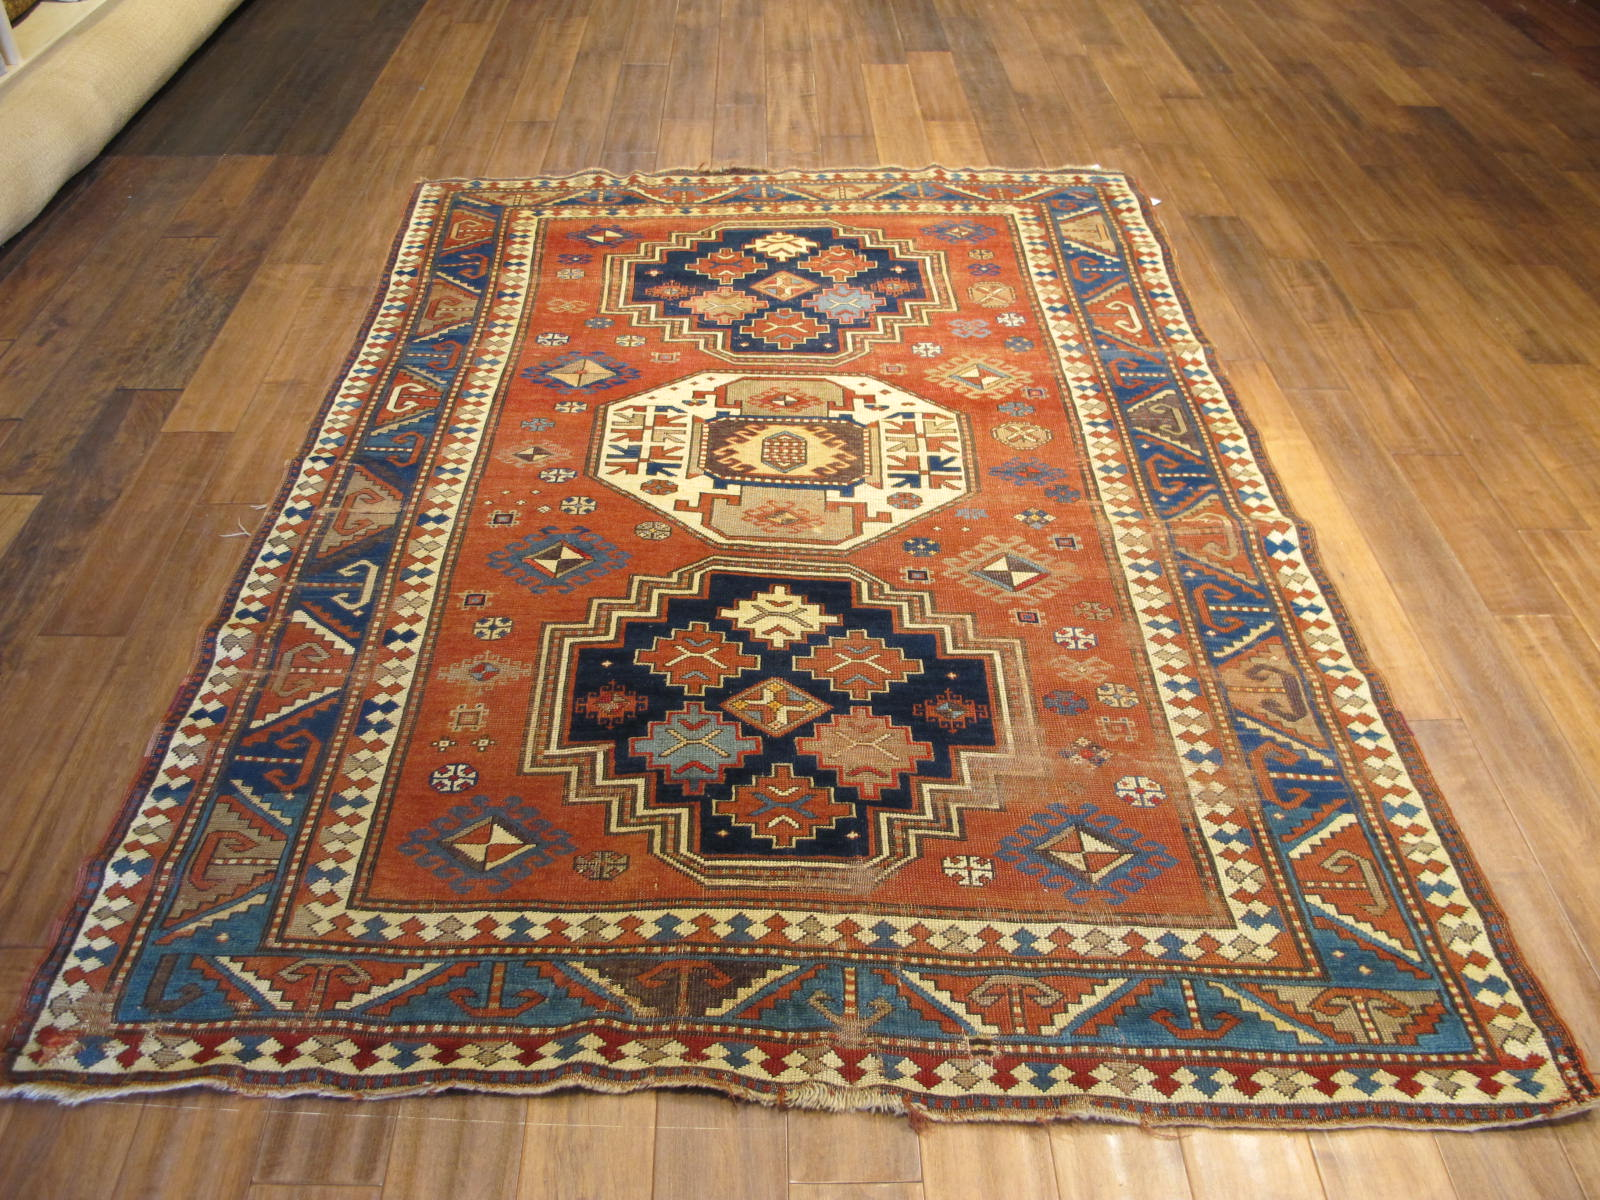 23087 antique caucasus kazak rug 5,2x7,4 (2)